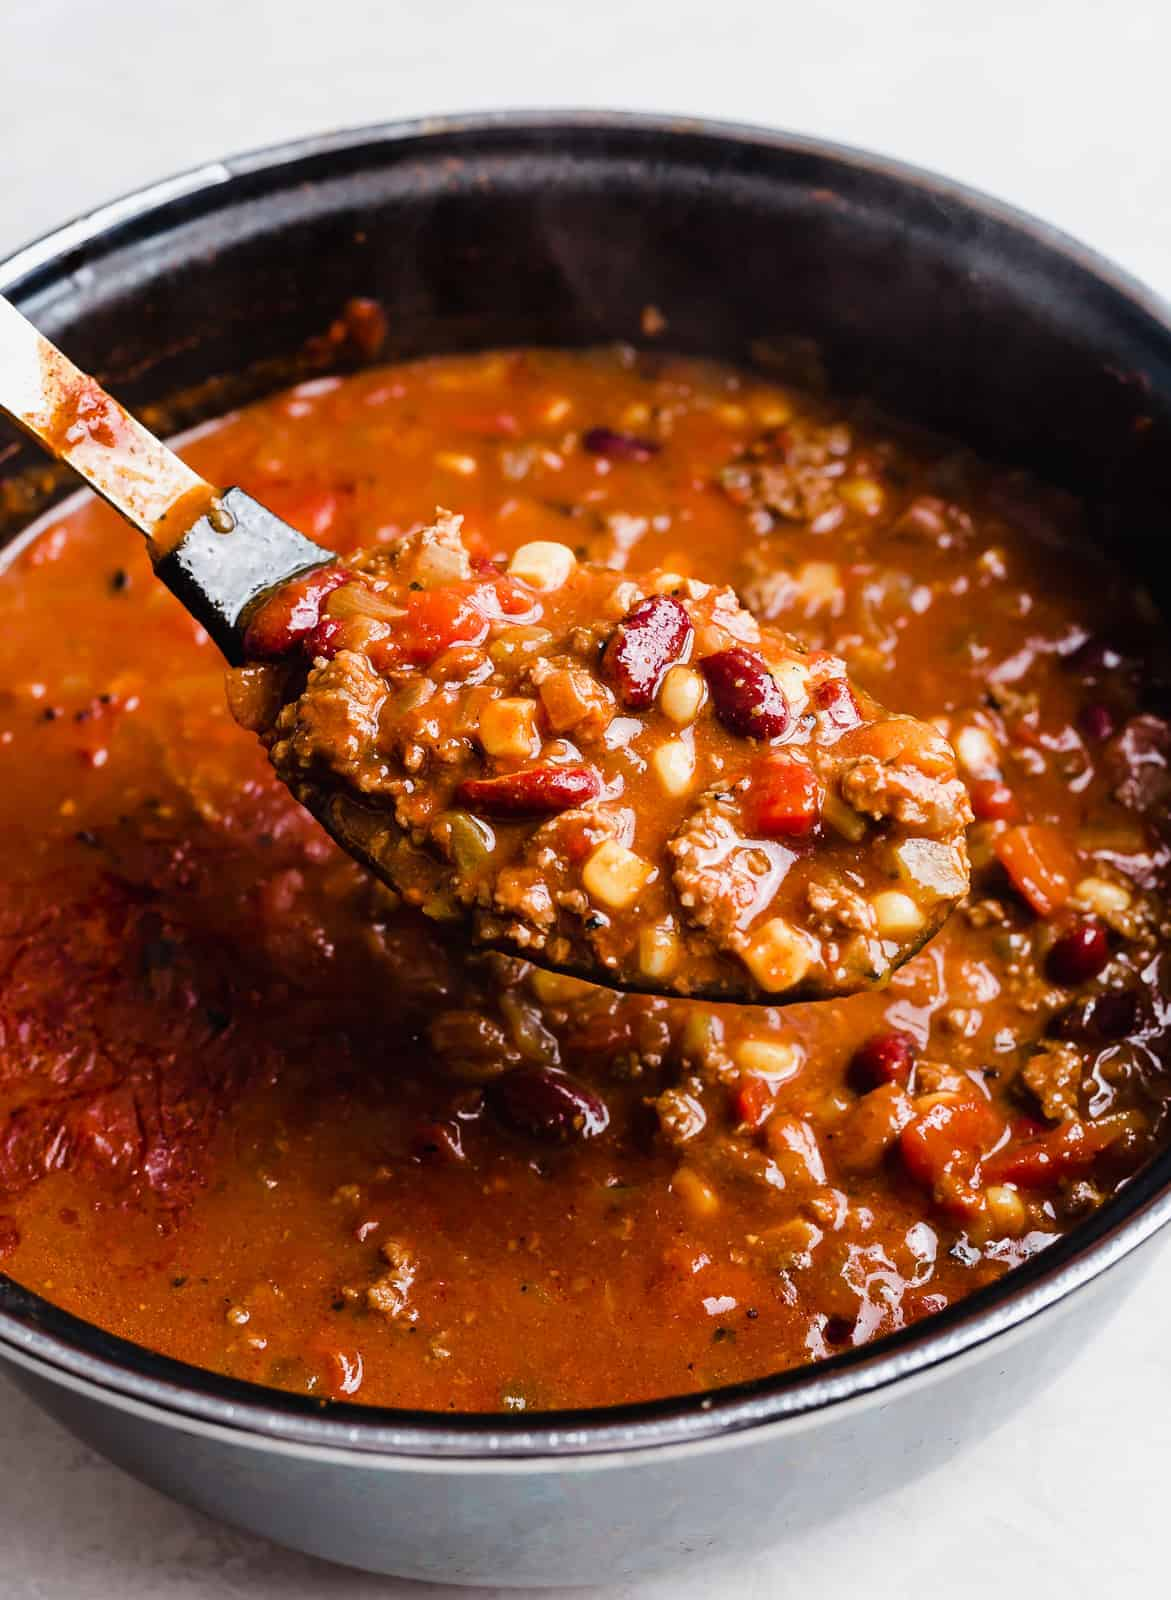 A large spoon scooping up taco soup from a pot.